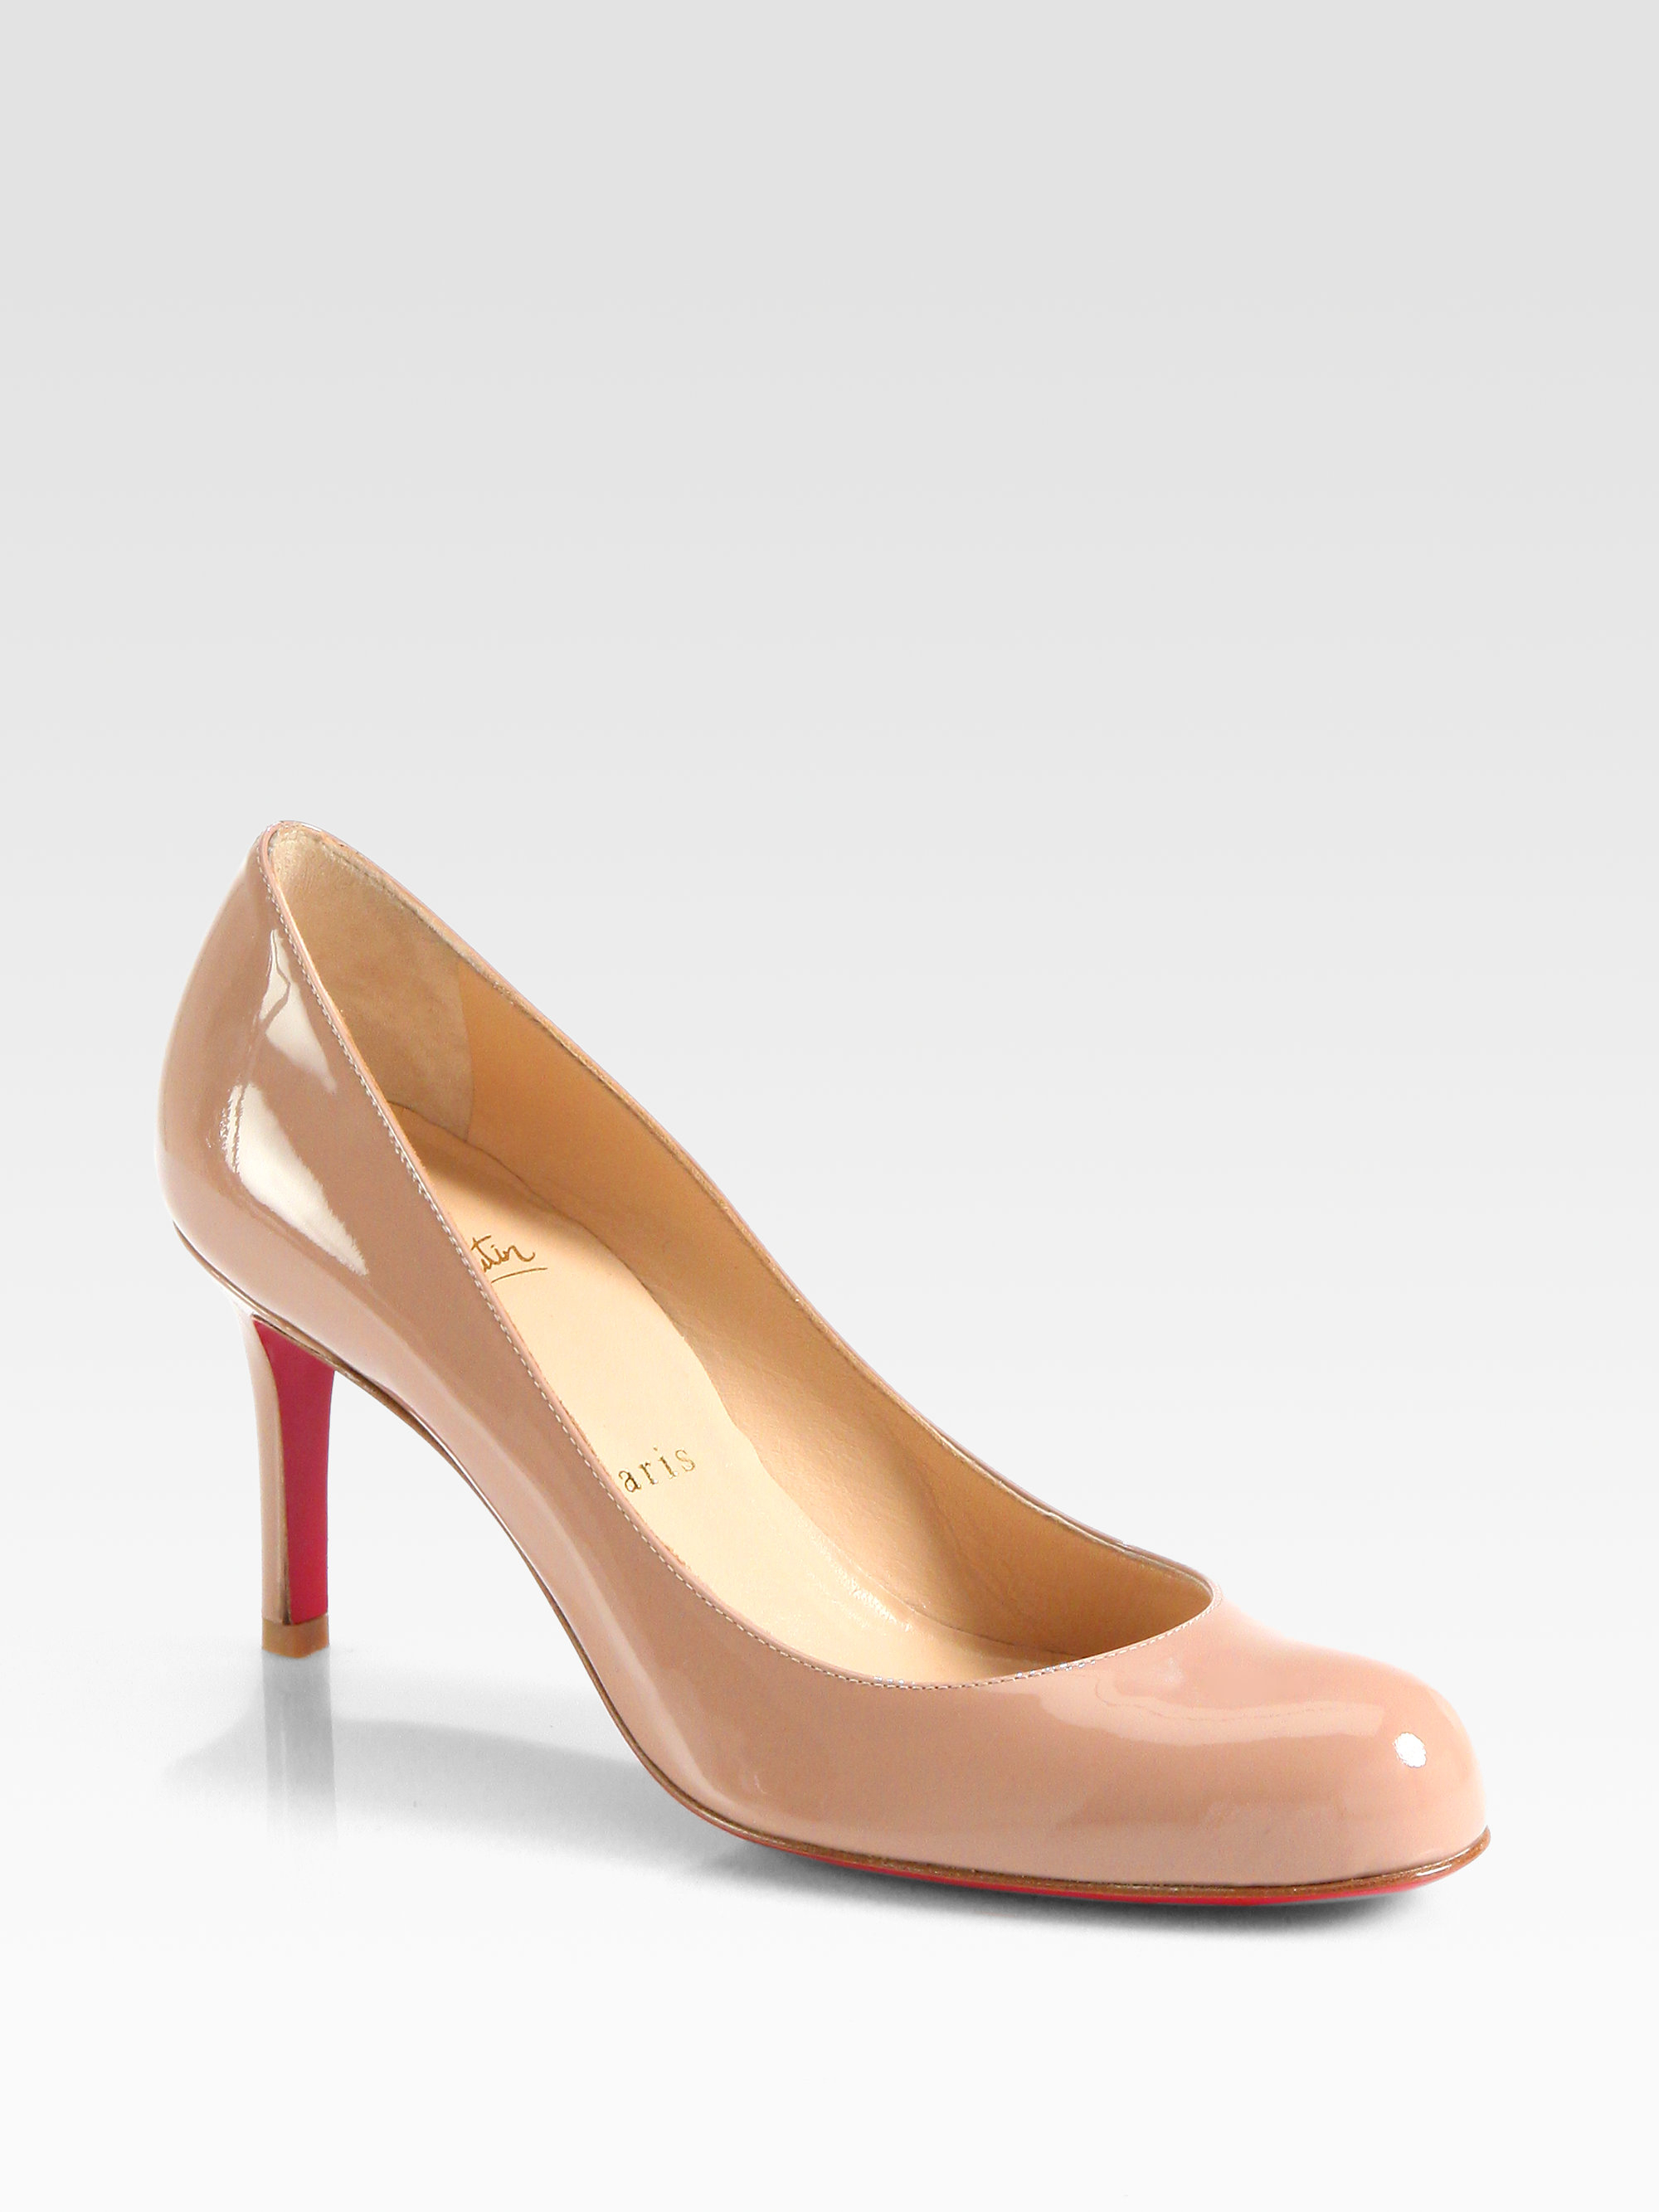 low priced 6cae7 e25a9 Lyst - Christian Louboutin Simple 70 Patent Leather Pumps in ...